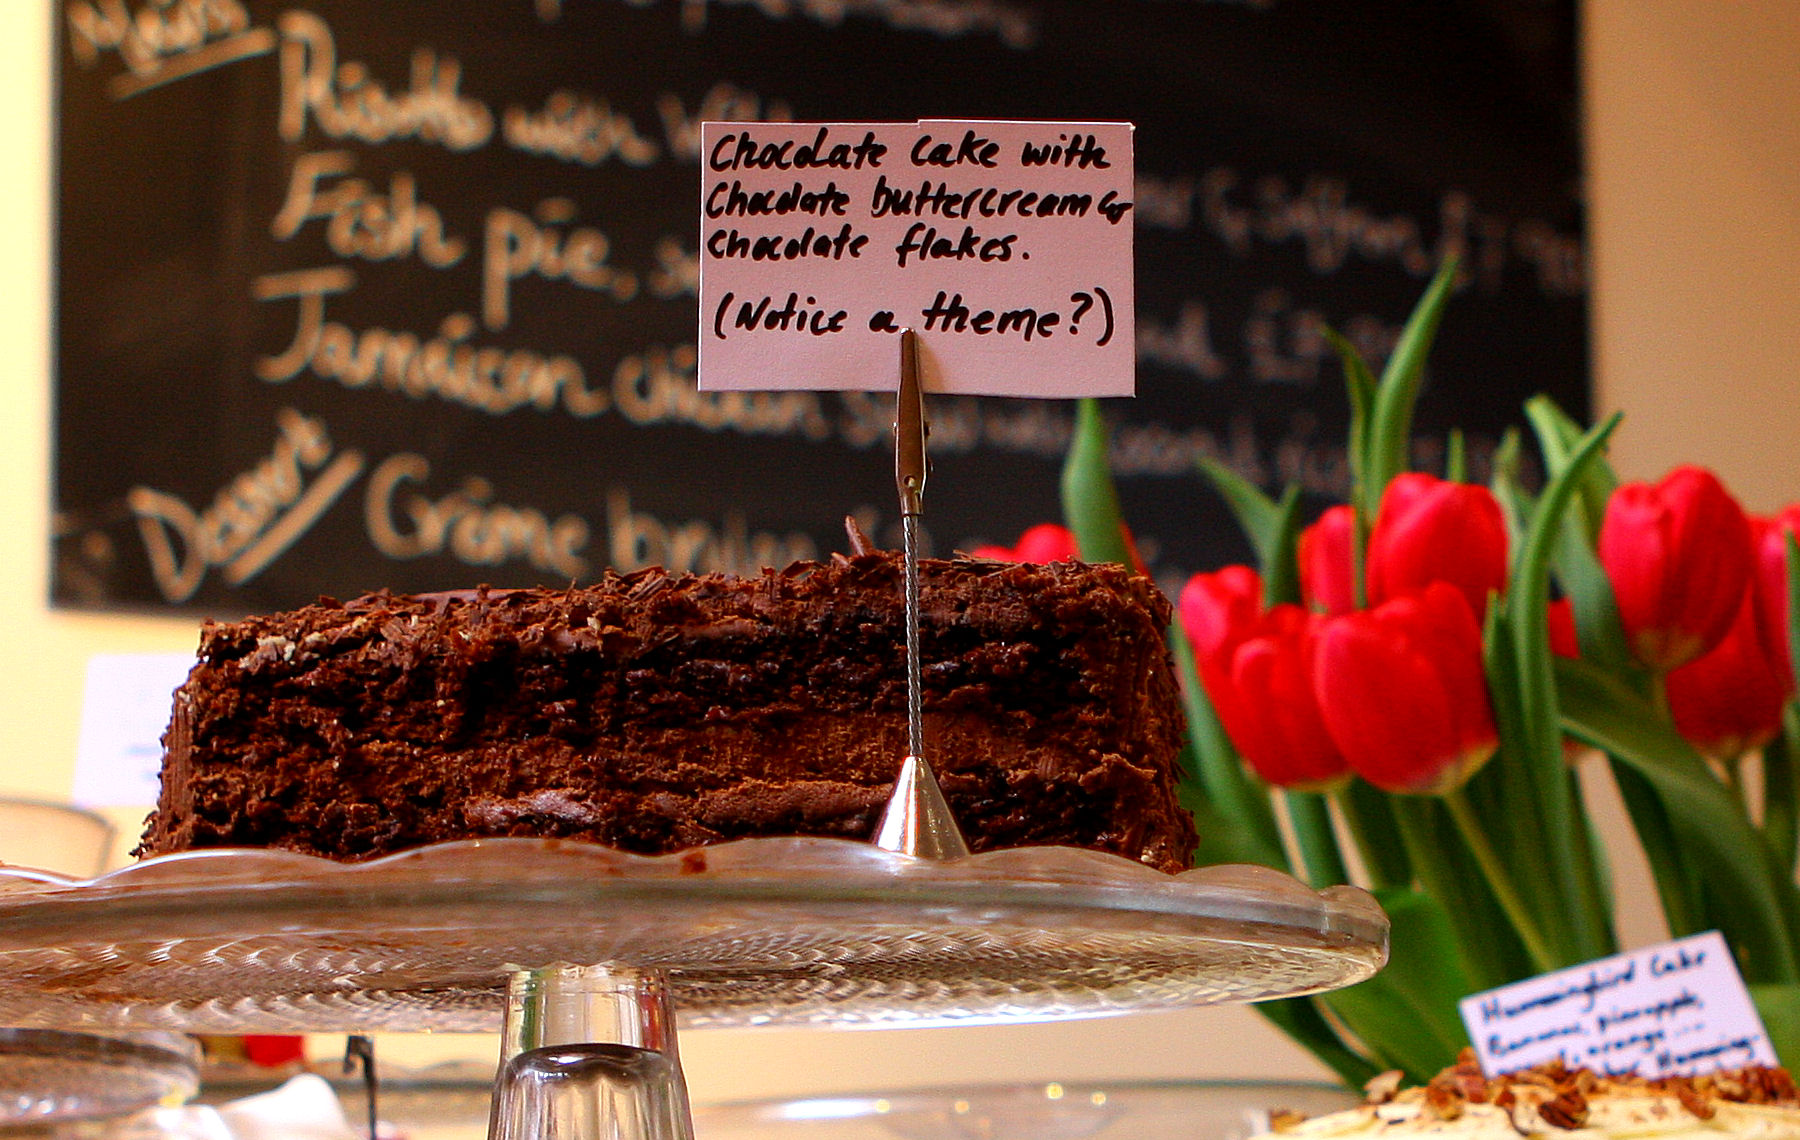 The Old Forge cafe in Chagford. Chocolate cake to die for. A few years ago now.